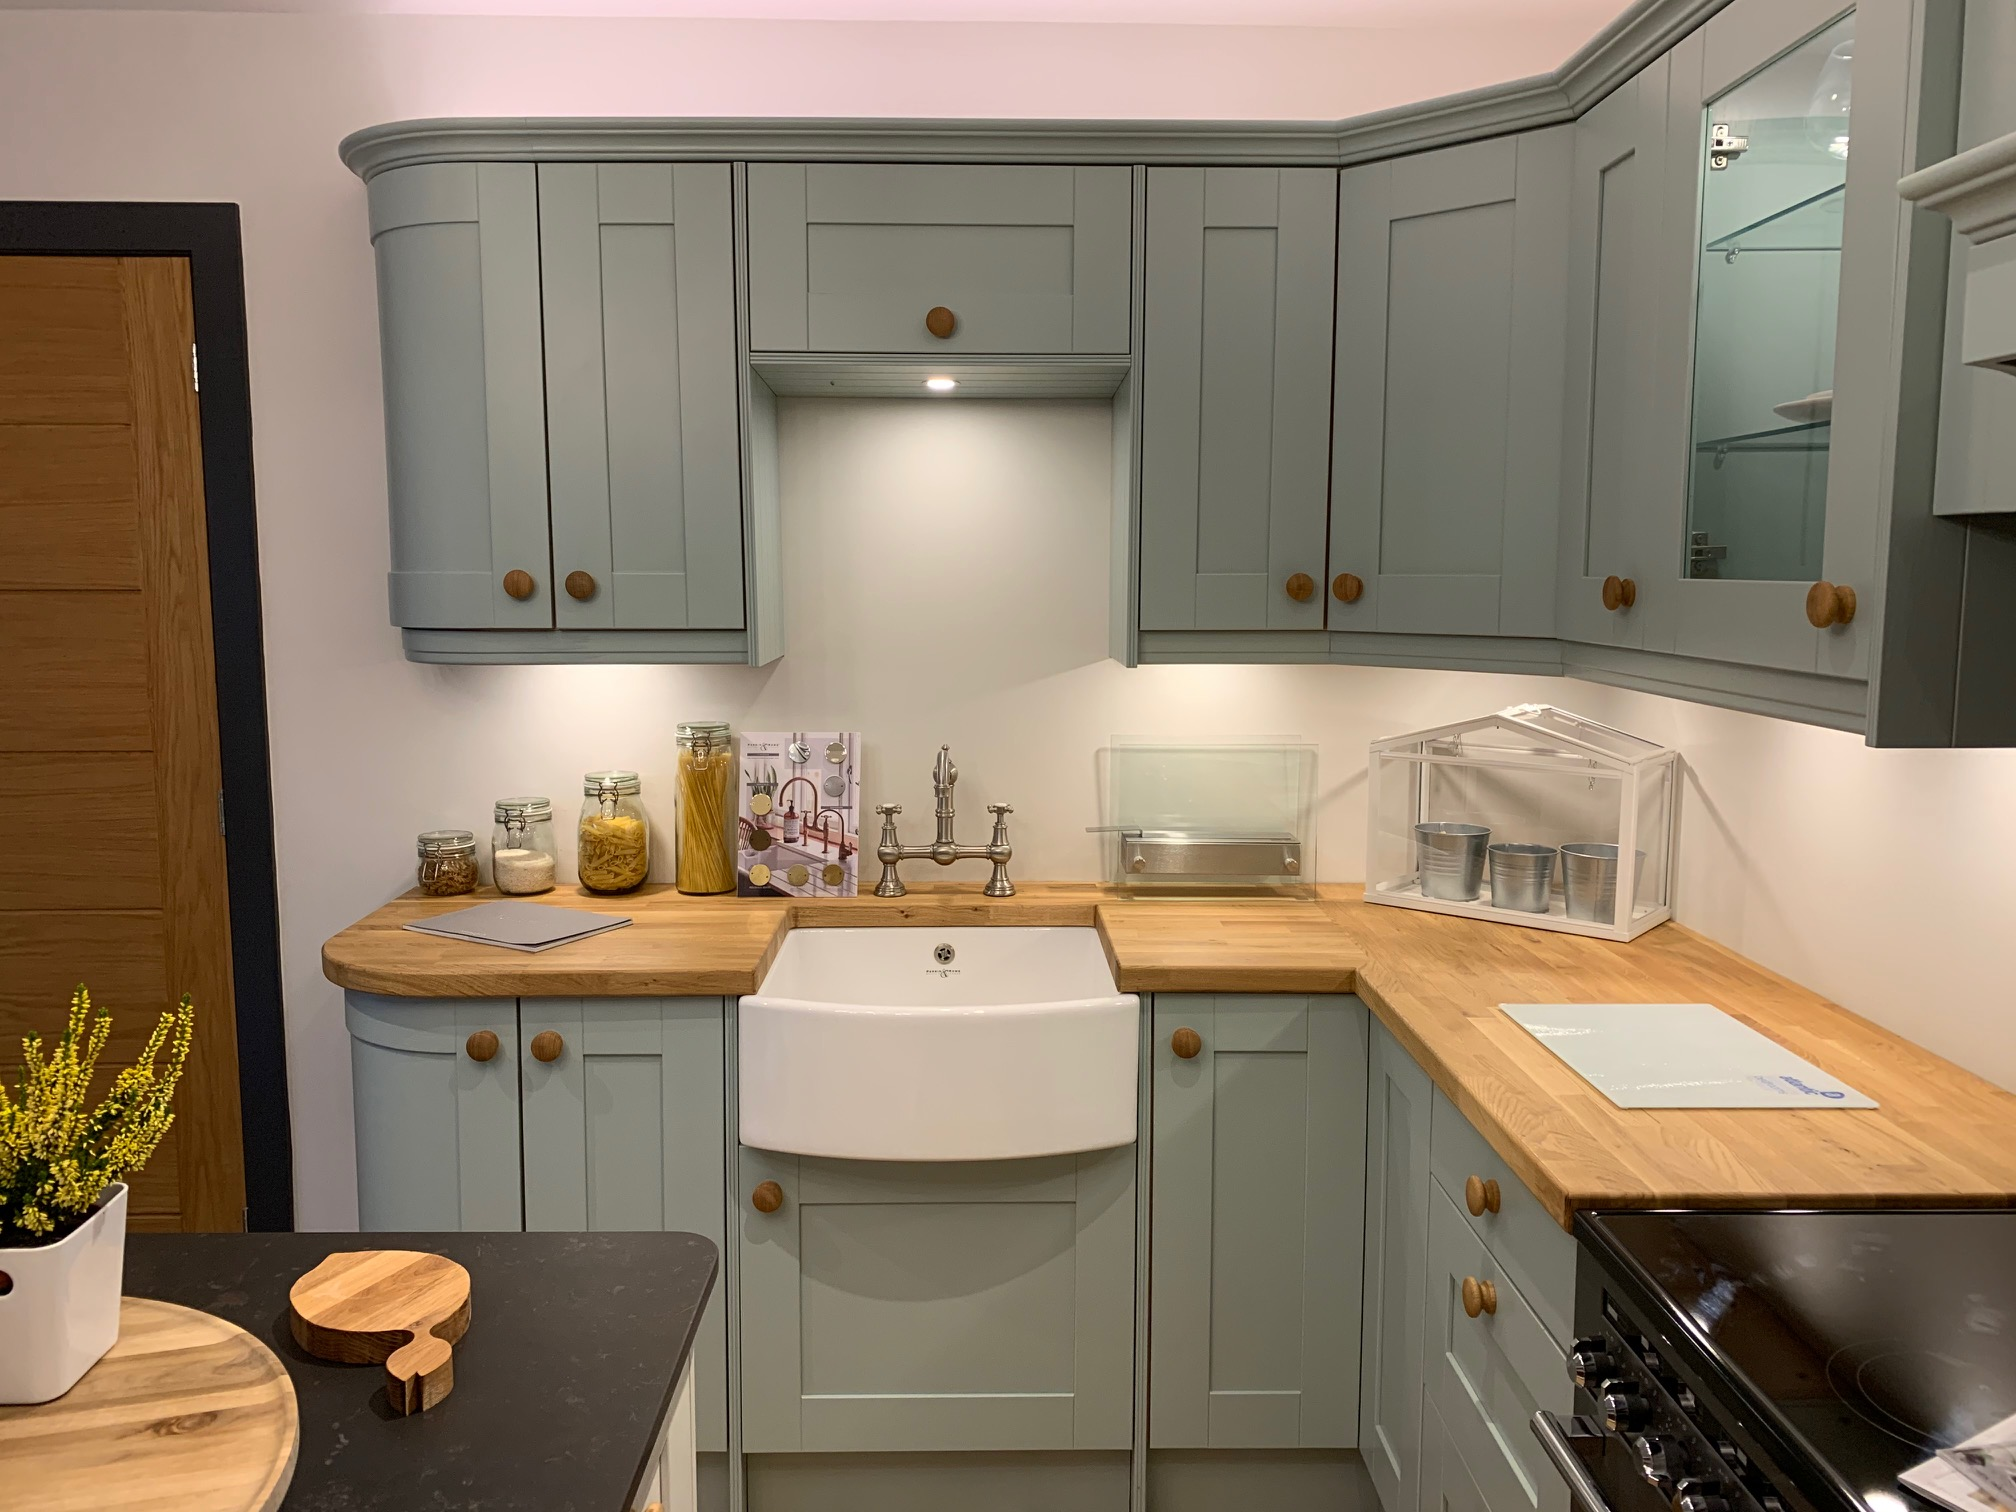 Ex Display Kitchen, Shaker, Crown Imperial, South - Used ...